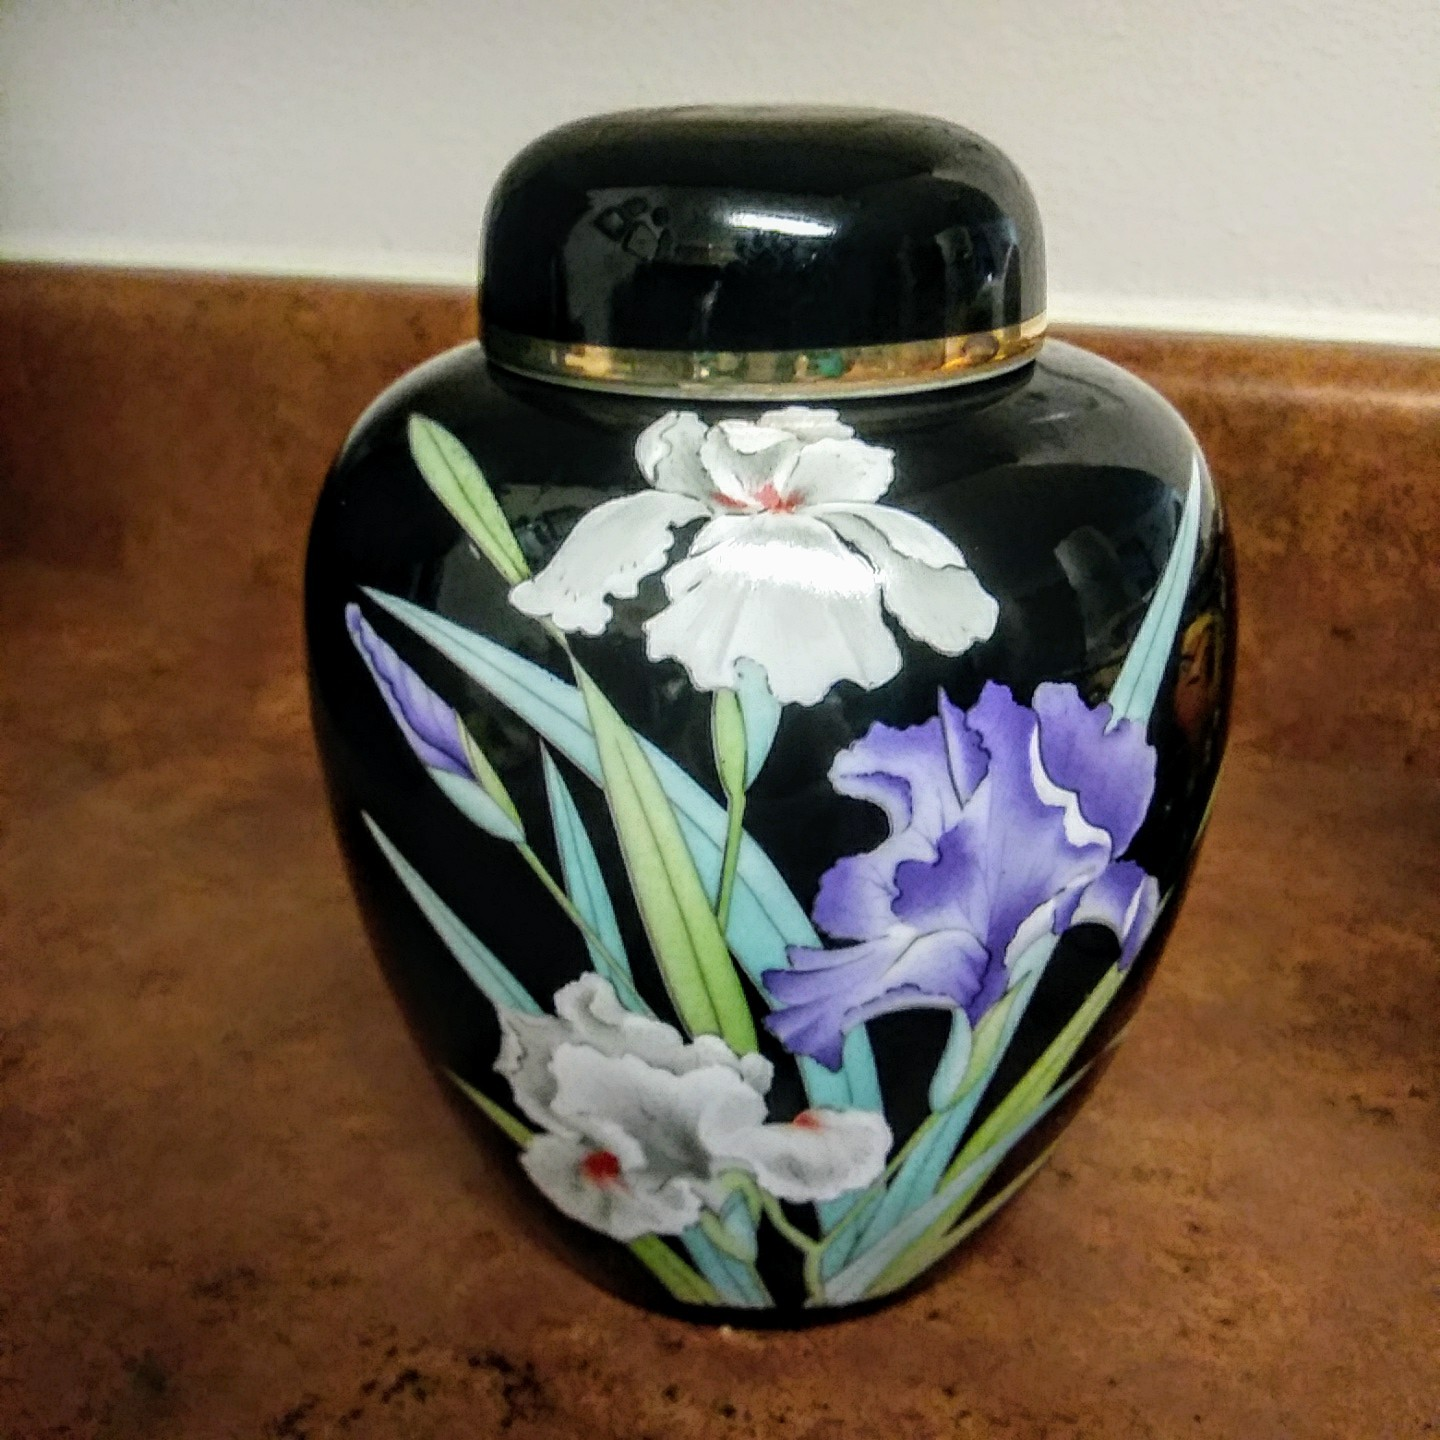 YAMAJI Fine China Made in Japan Black Ginger Jar w/ Lid Iris Floral Design and G